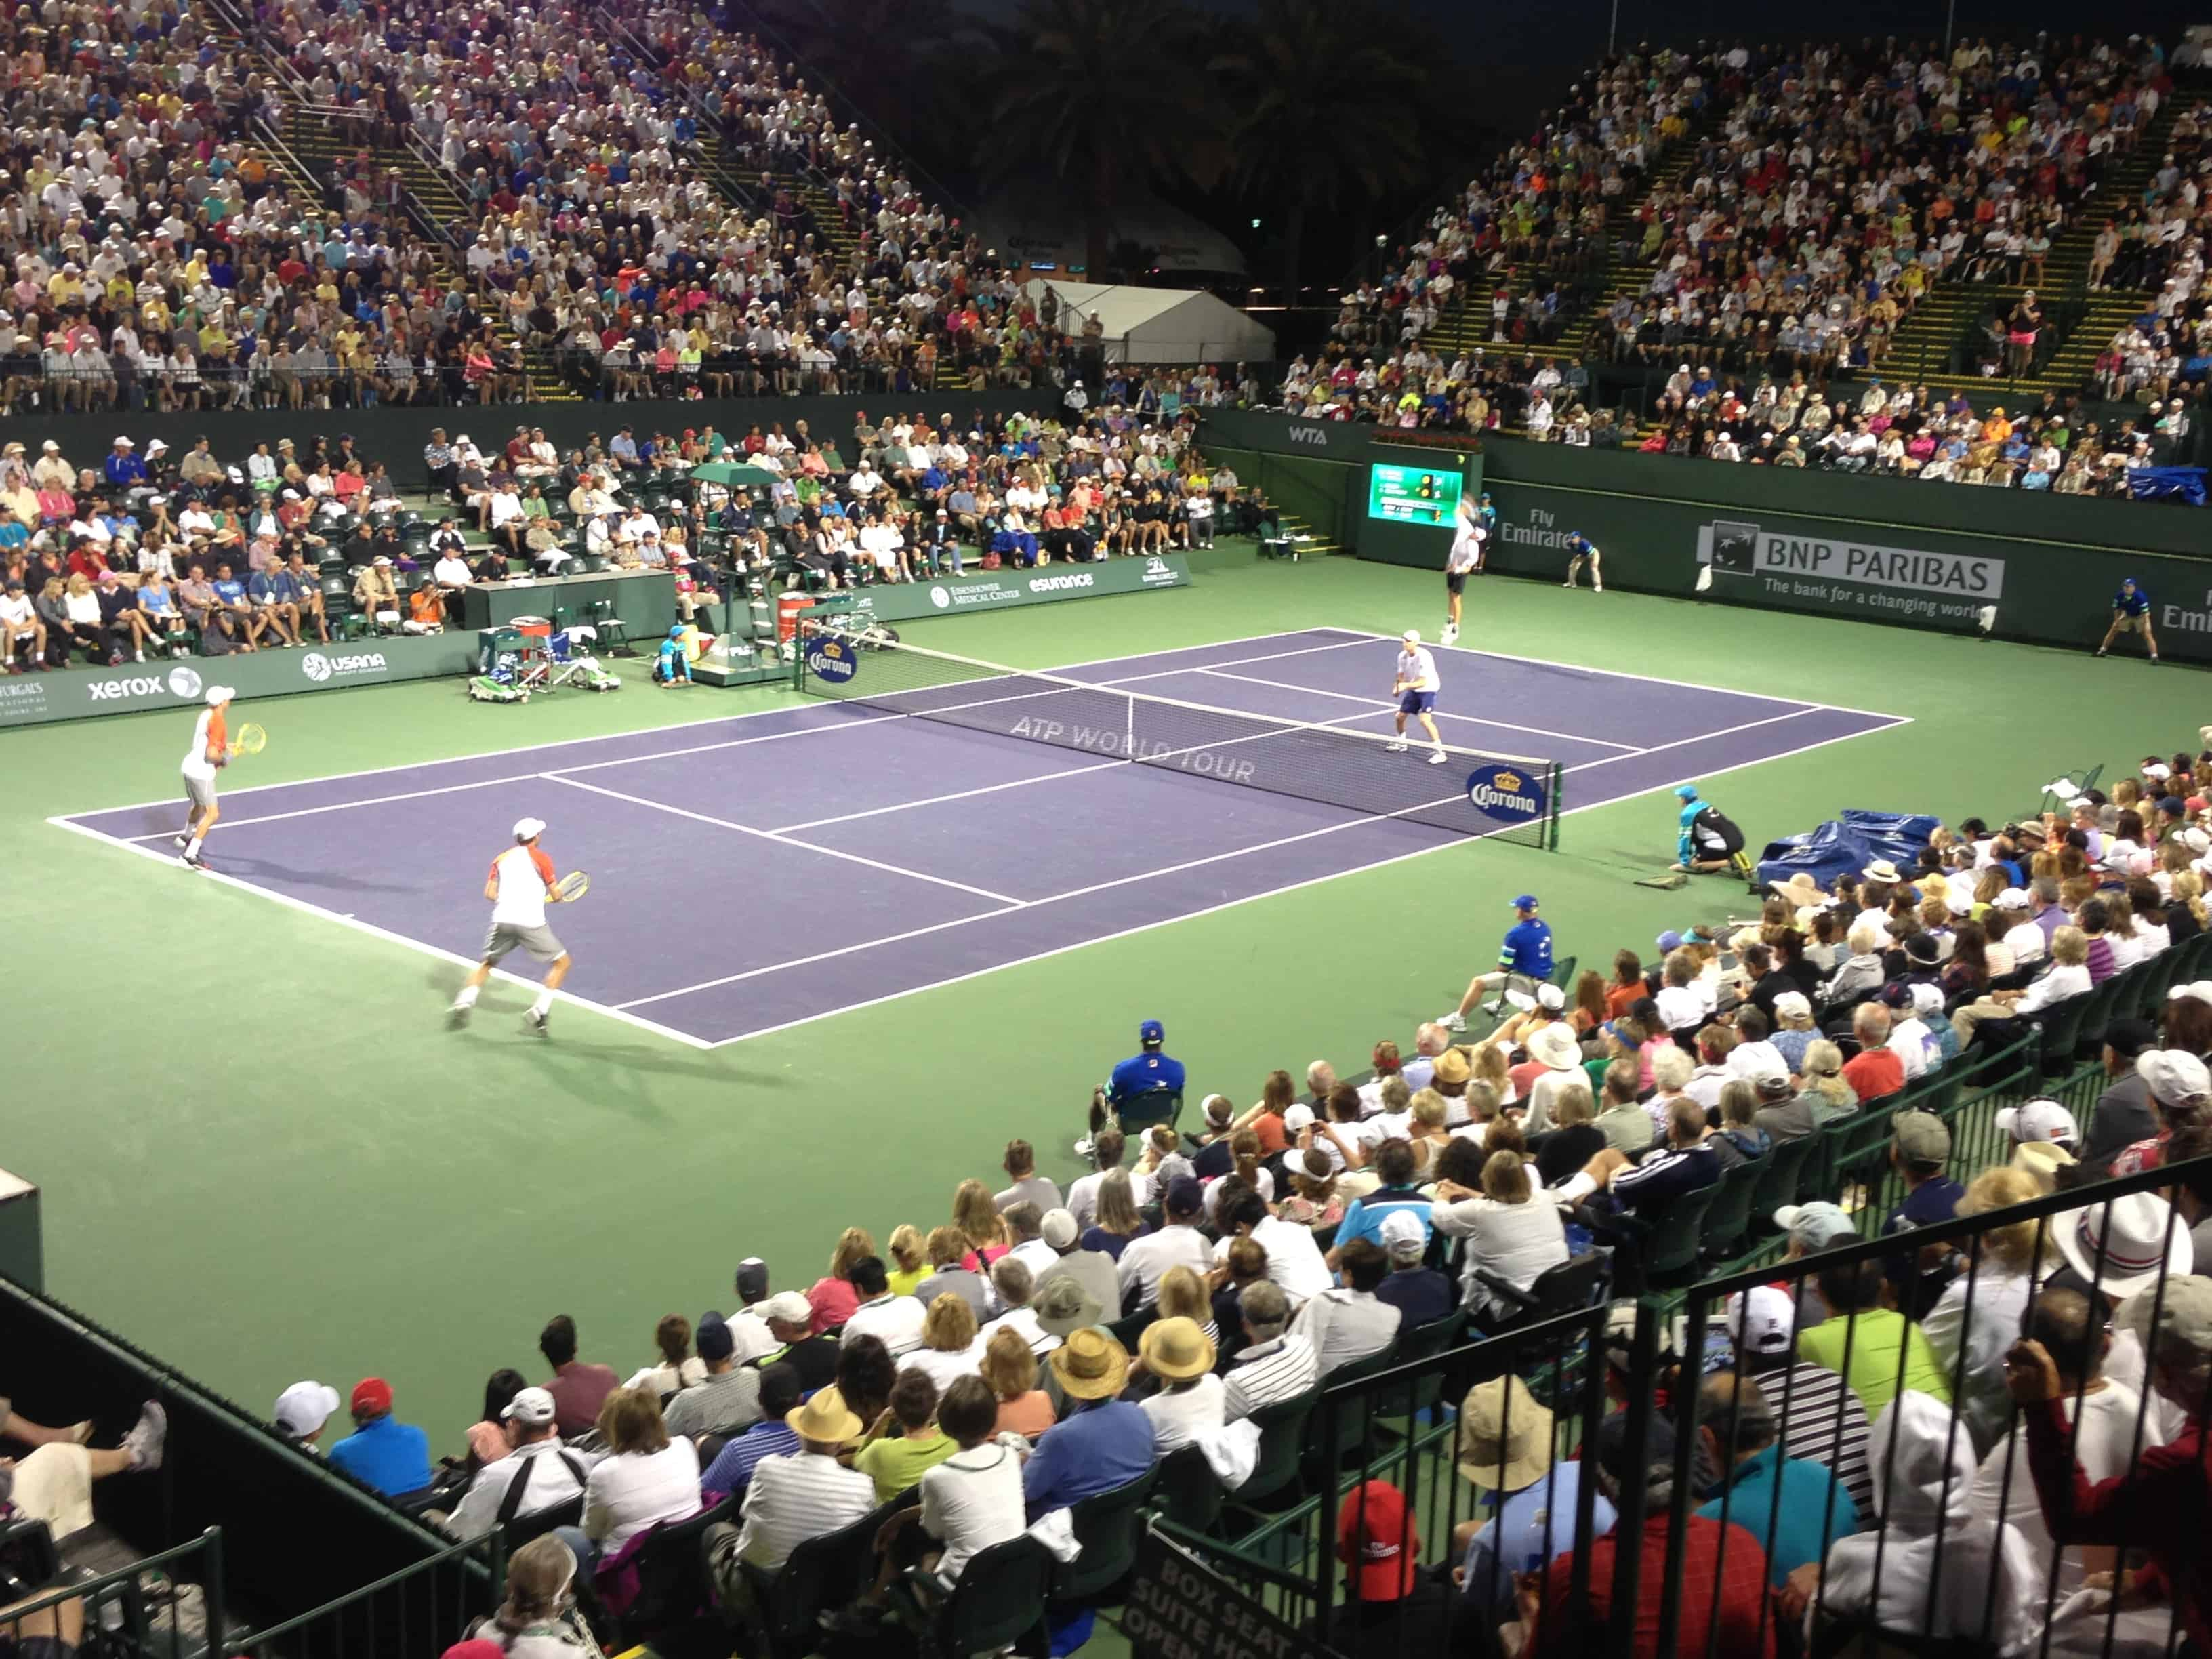 Look for a brand new 8-thousand seat Stadium-2 at the 2014 BNP Paribas Open